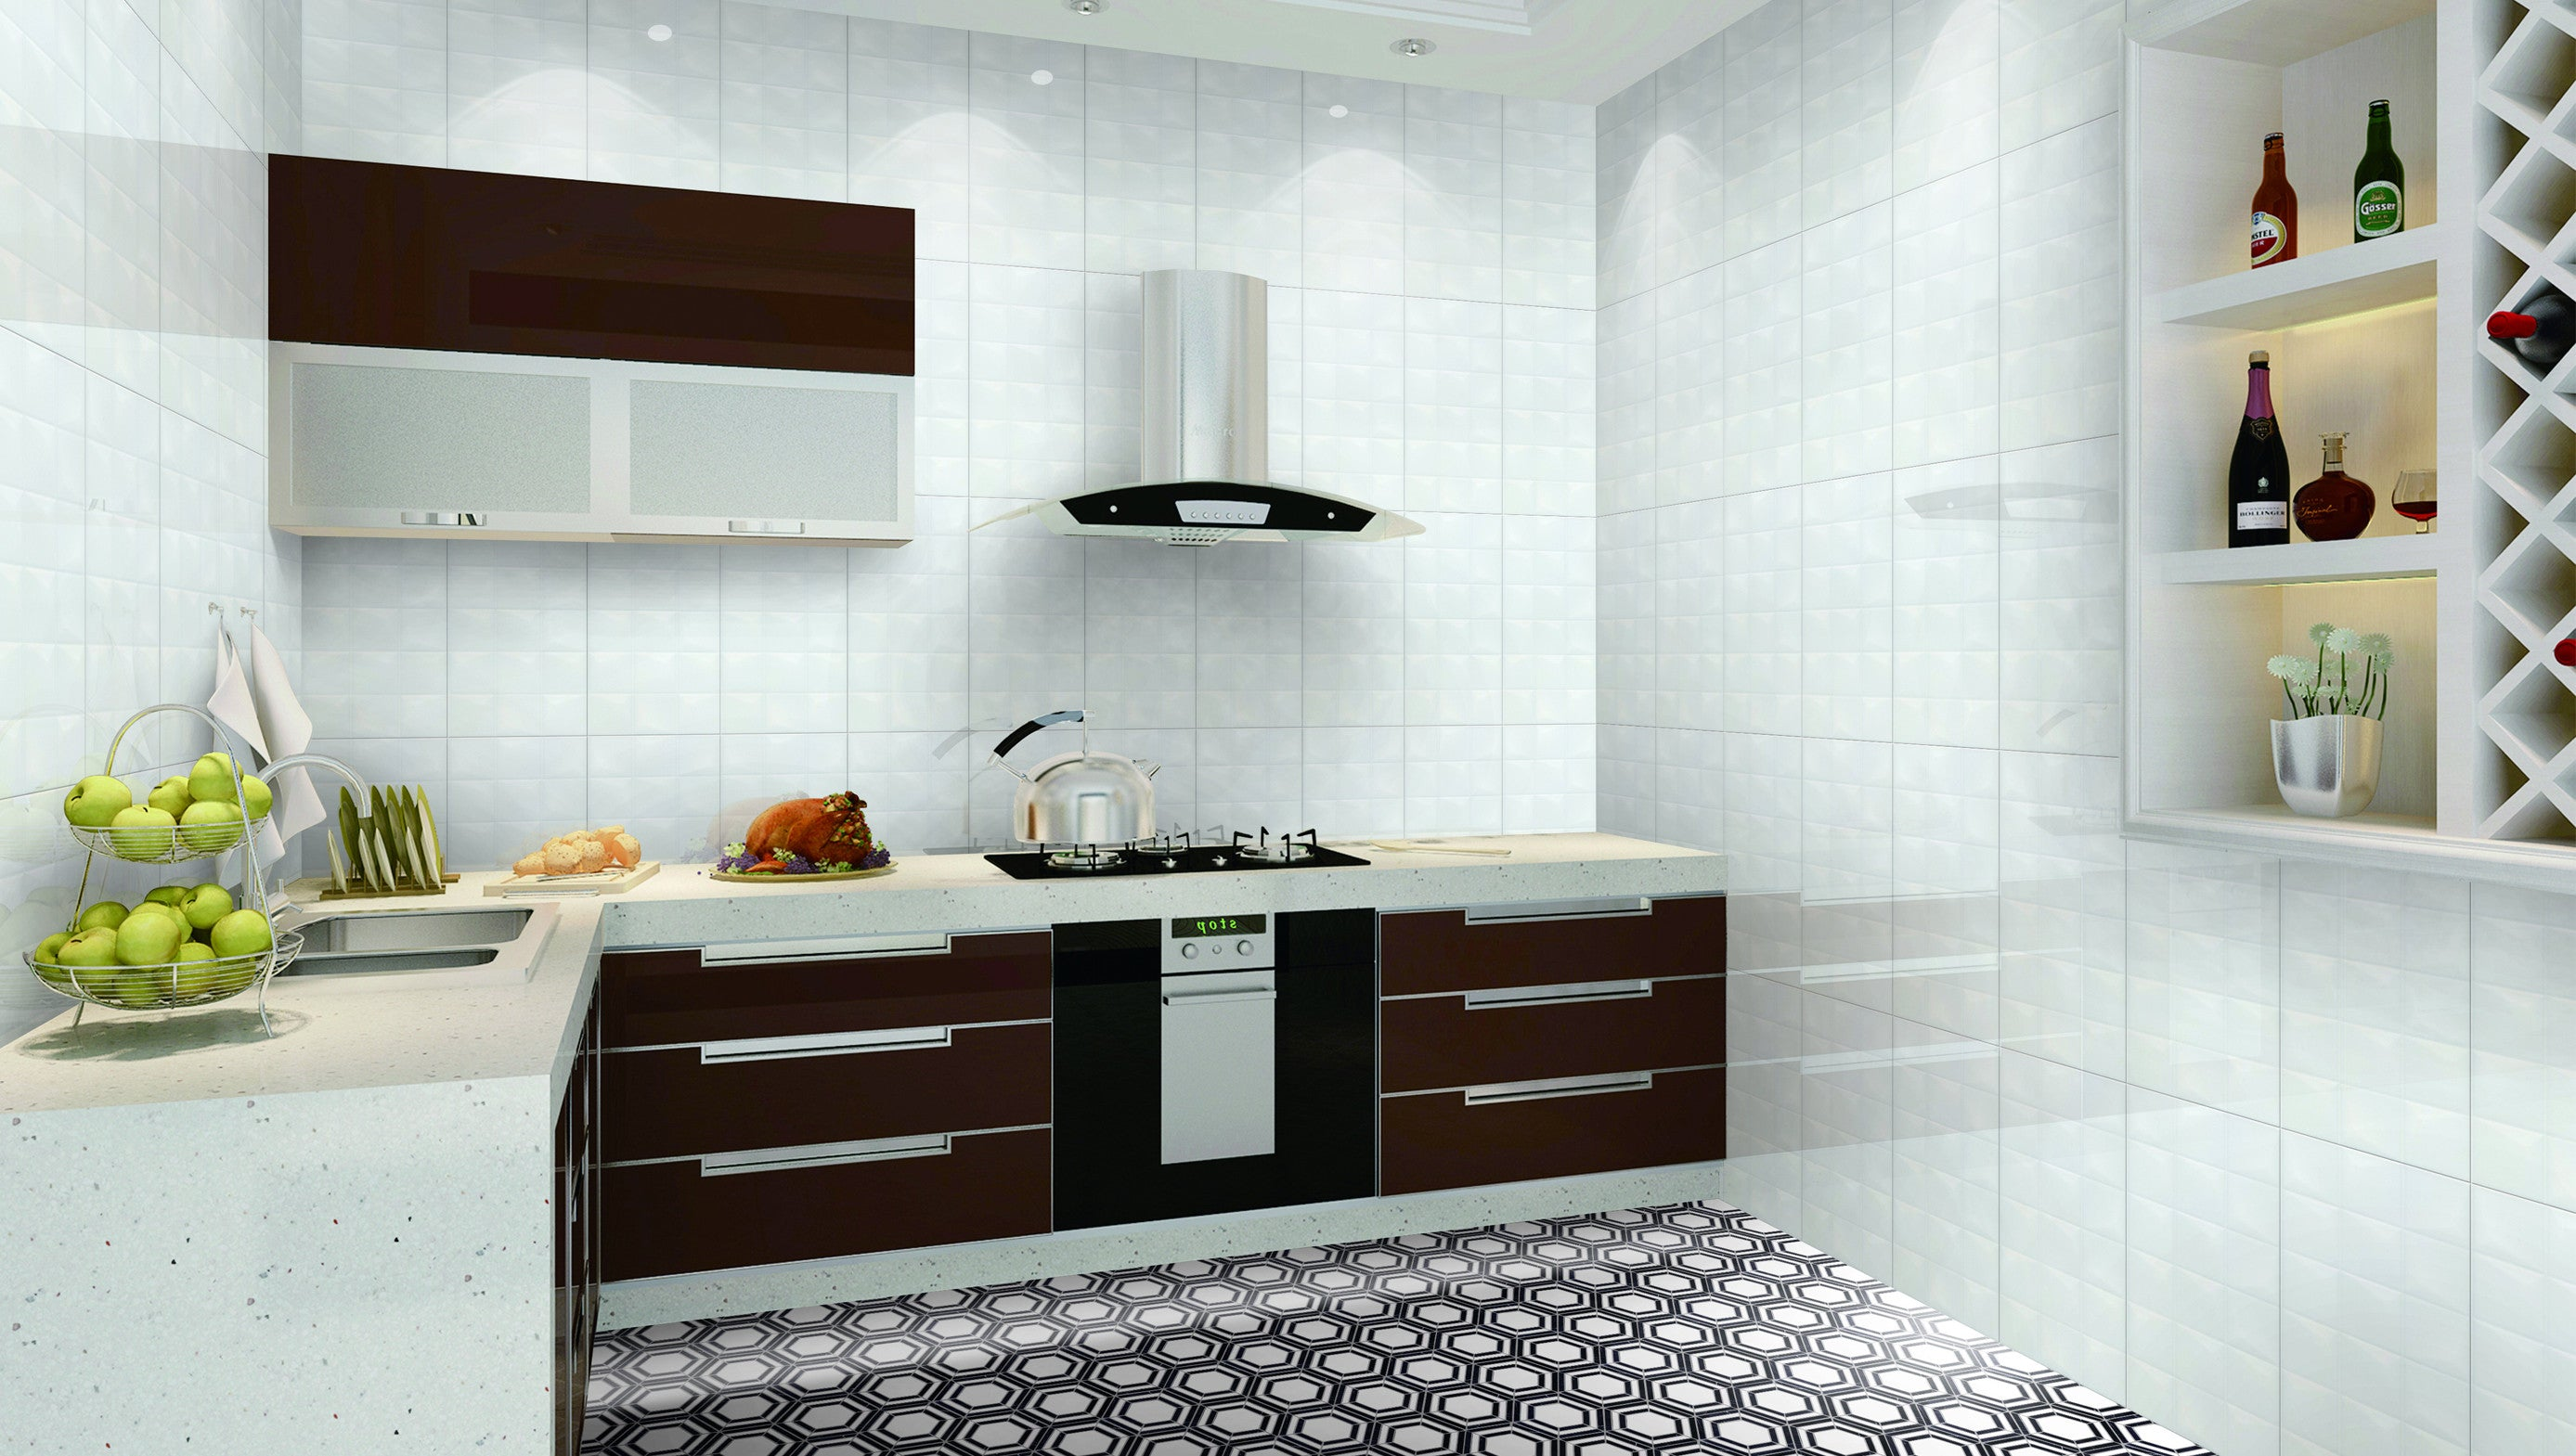 Multile Tiles And Mosaic Wholesale Distributor New Jersey Tile Generation